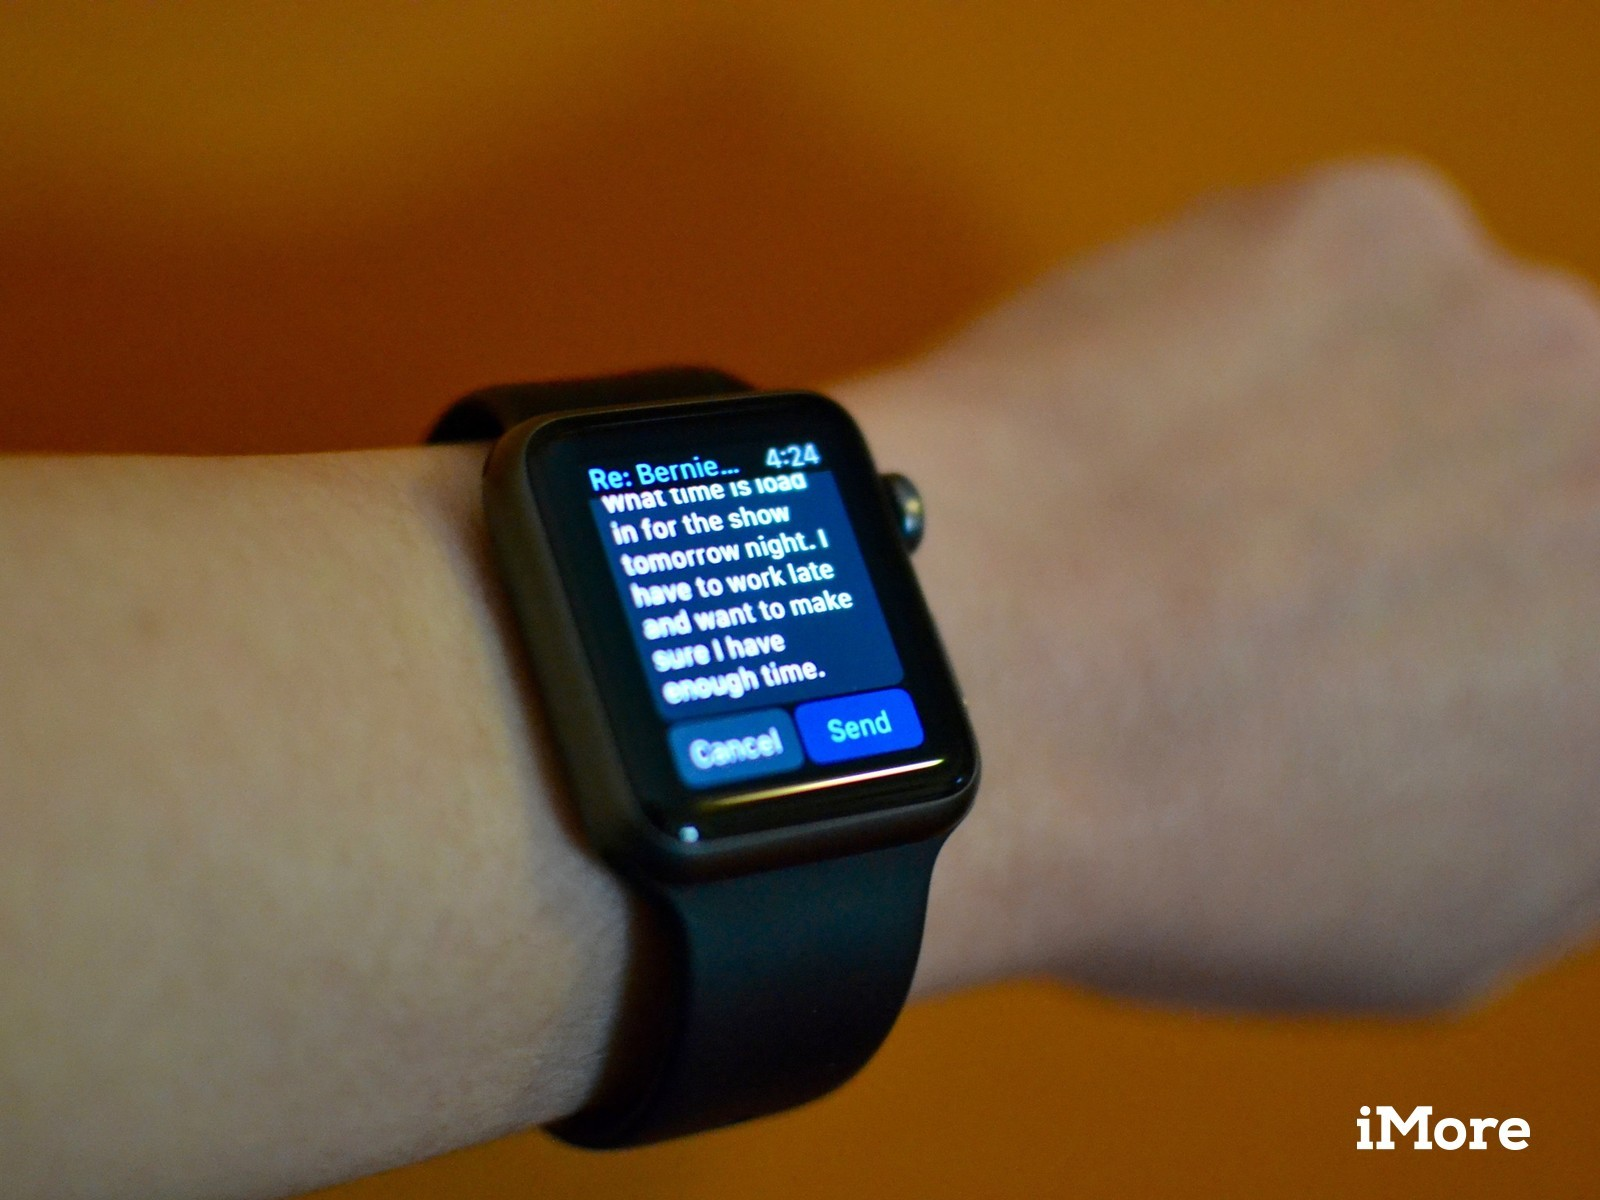 Emailing on Apple Watch